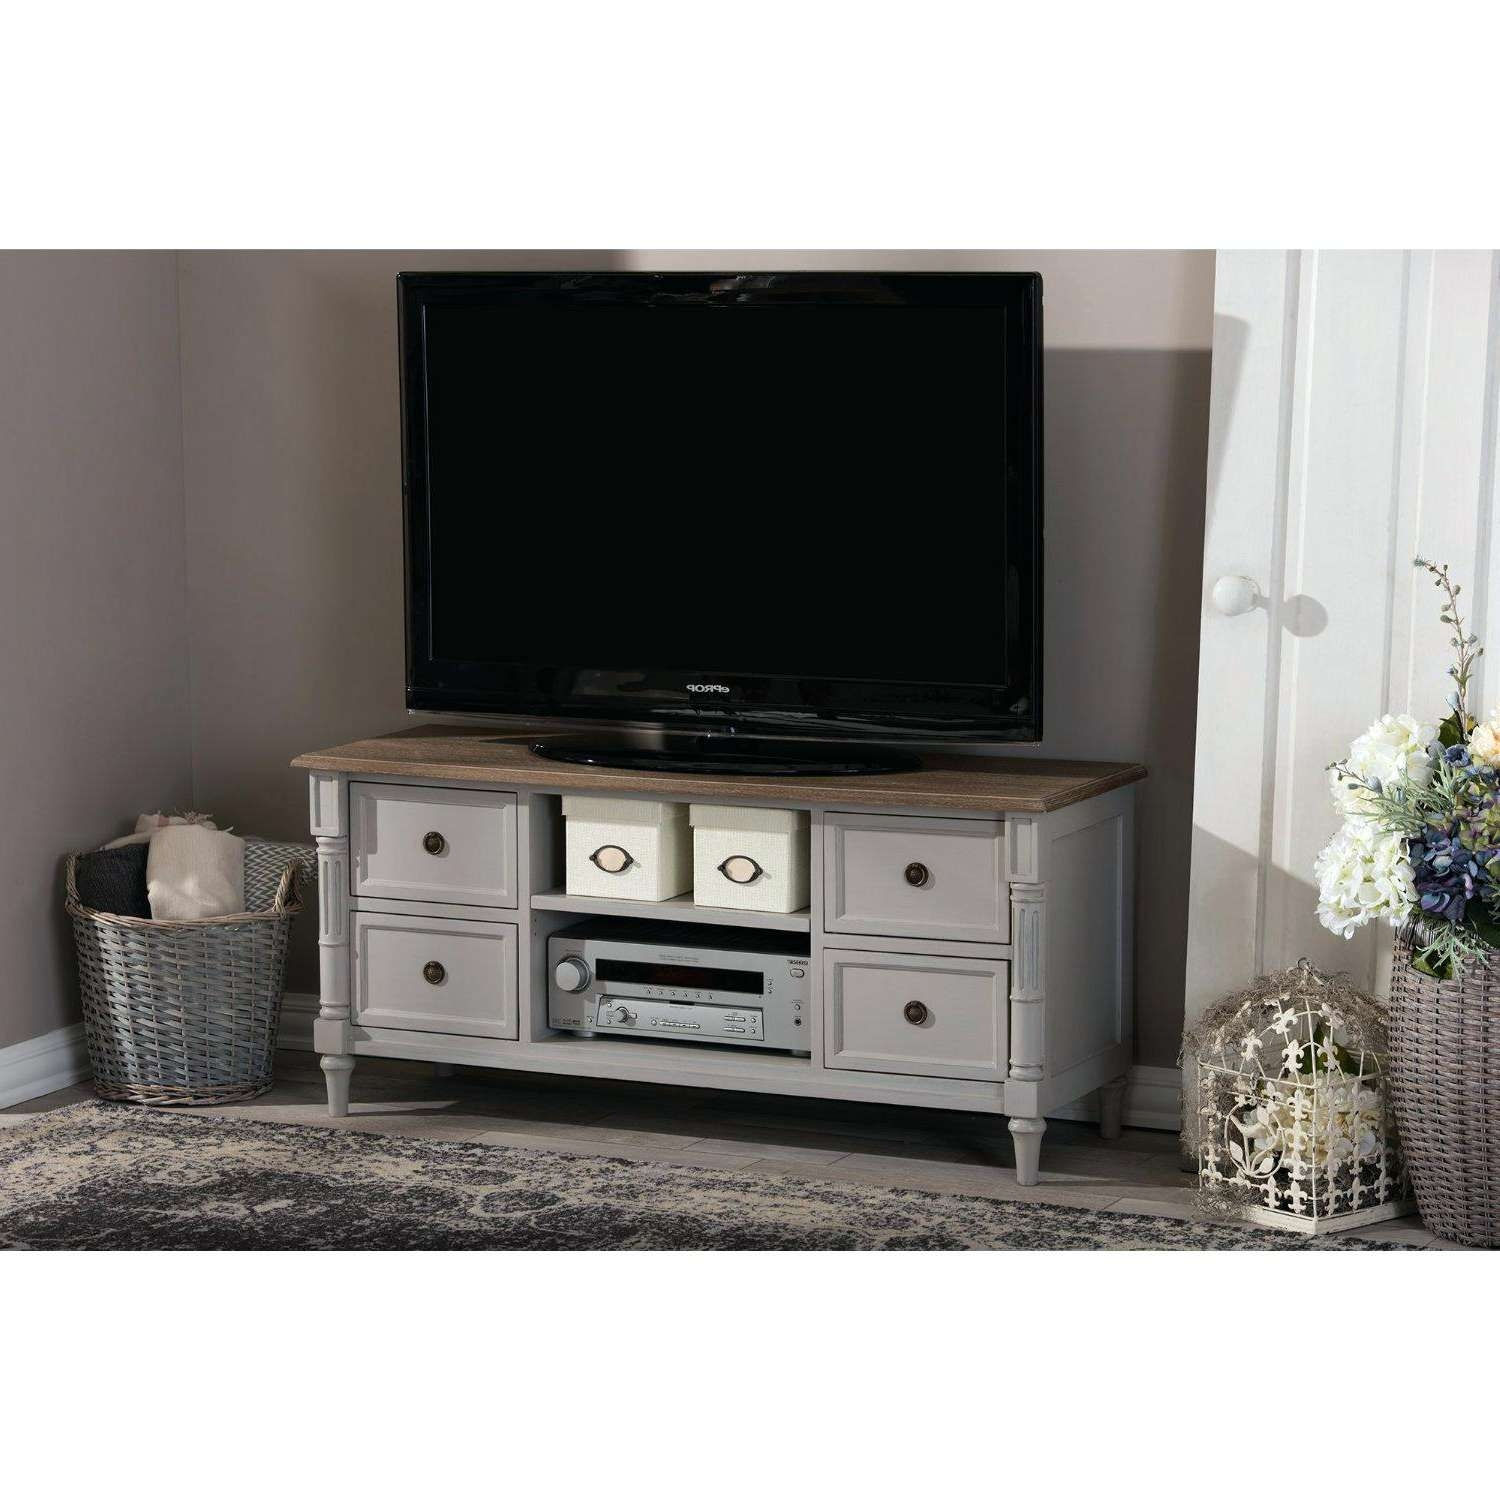 Country Tv Stand (16 Photos) | Bathgroundspath Inside Country Tv Stands (View 6 of 15)